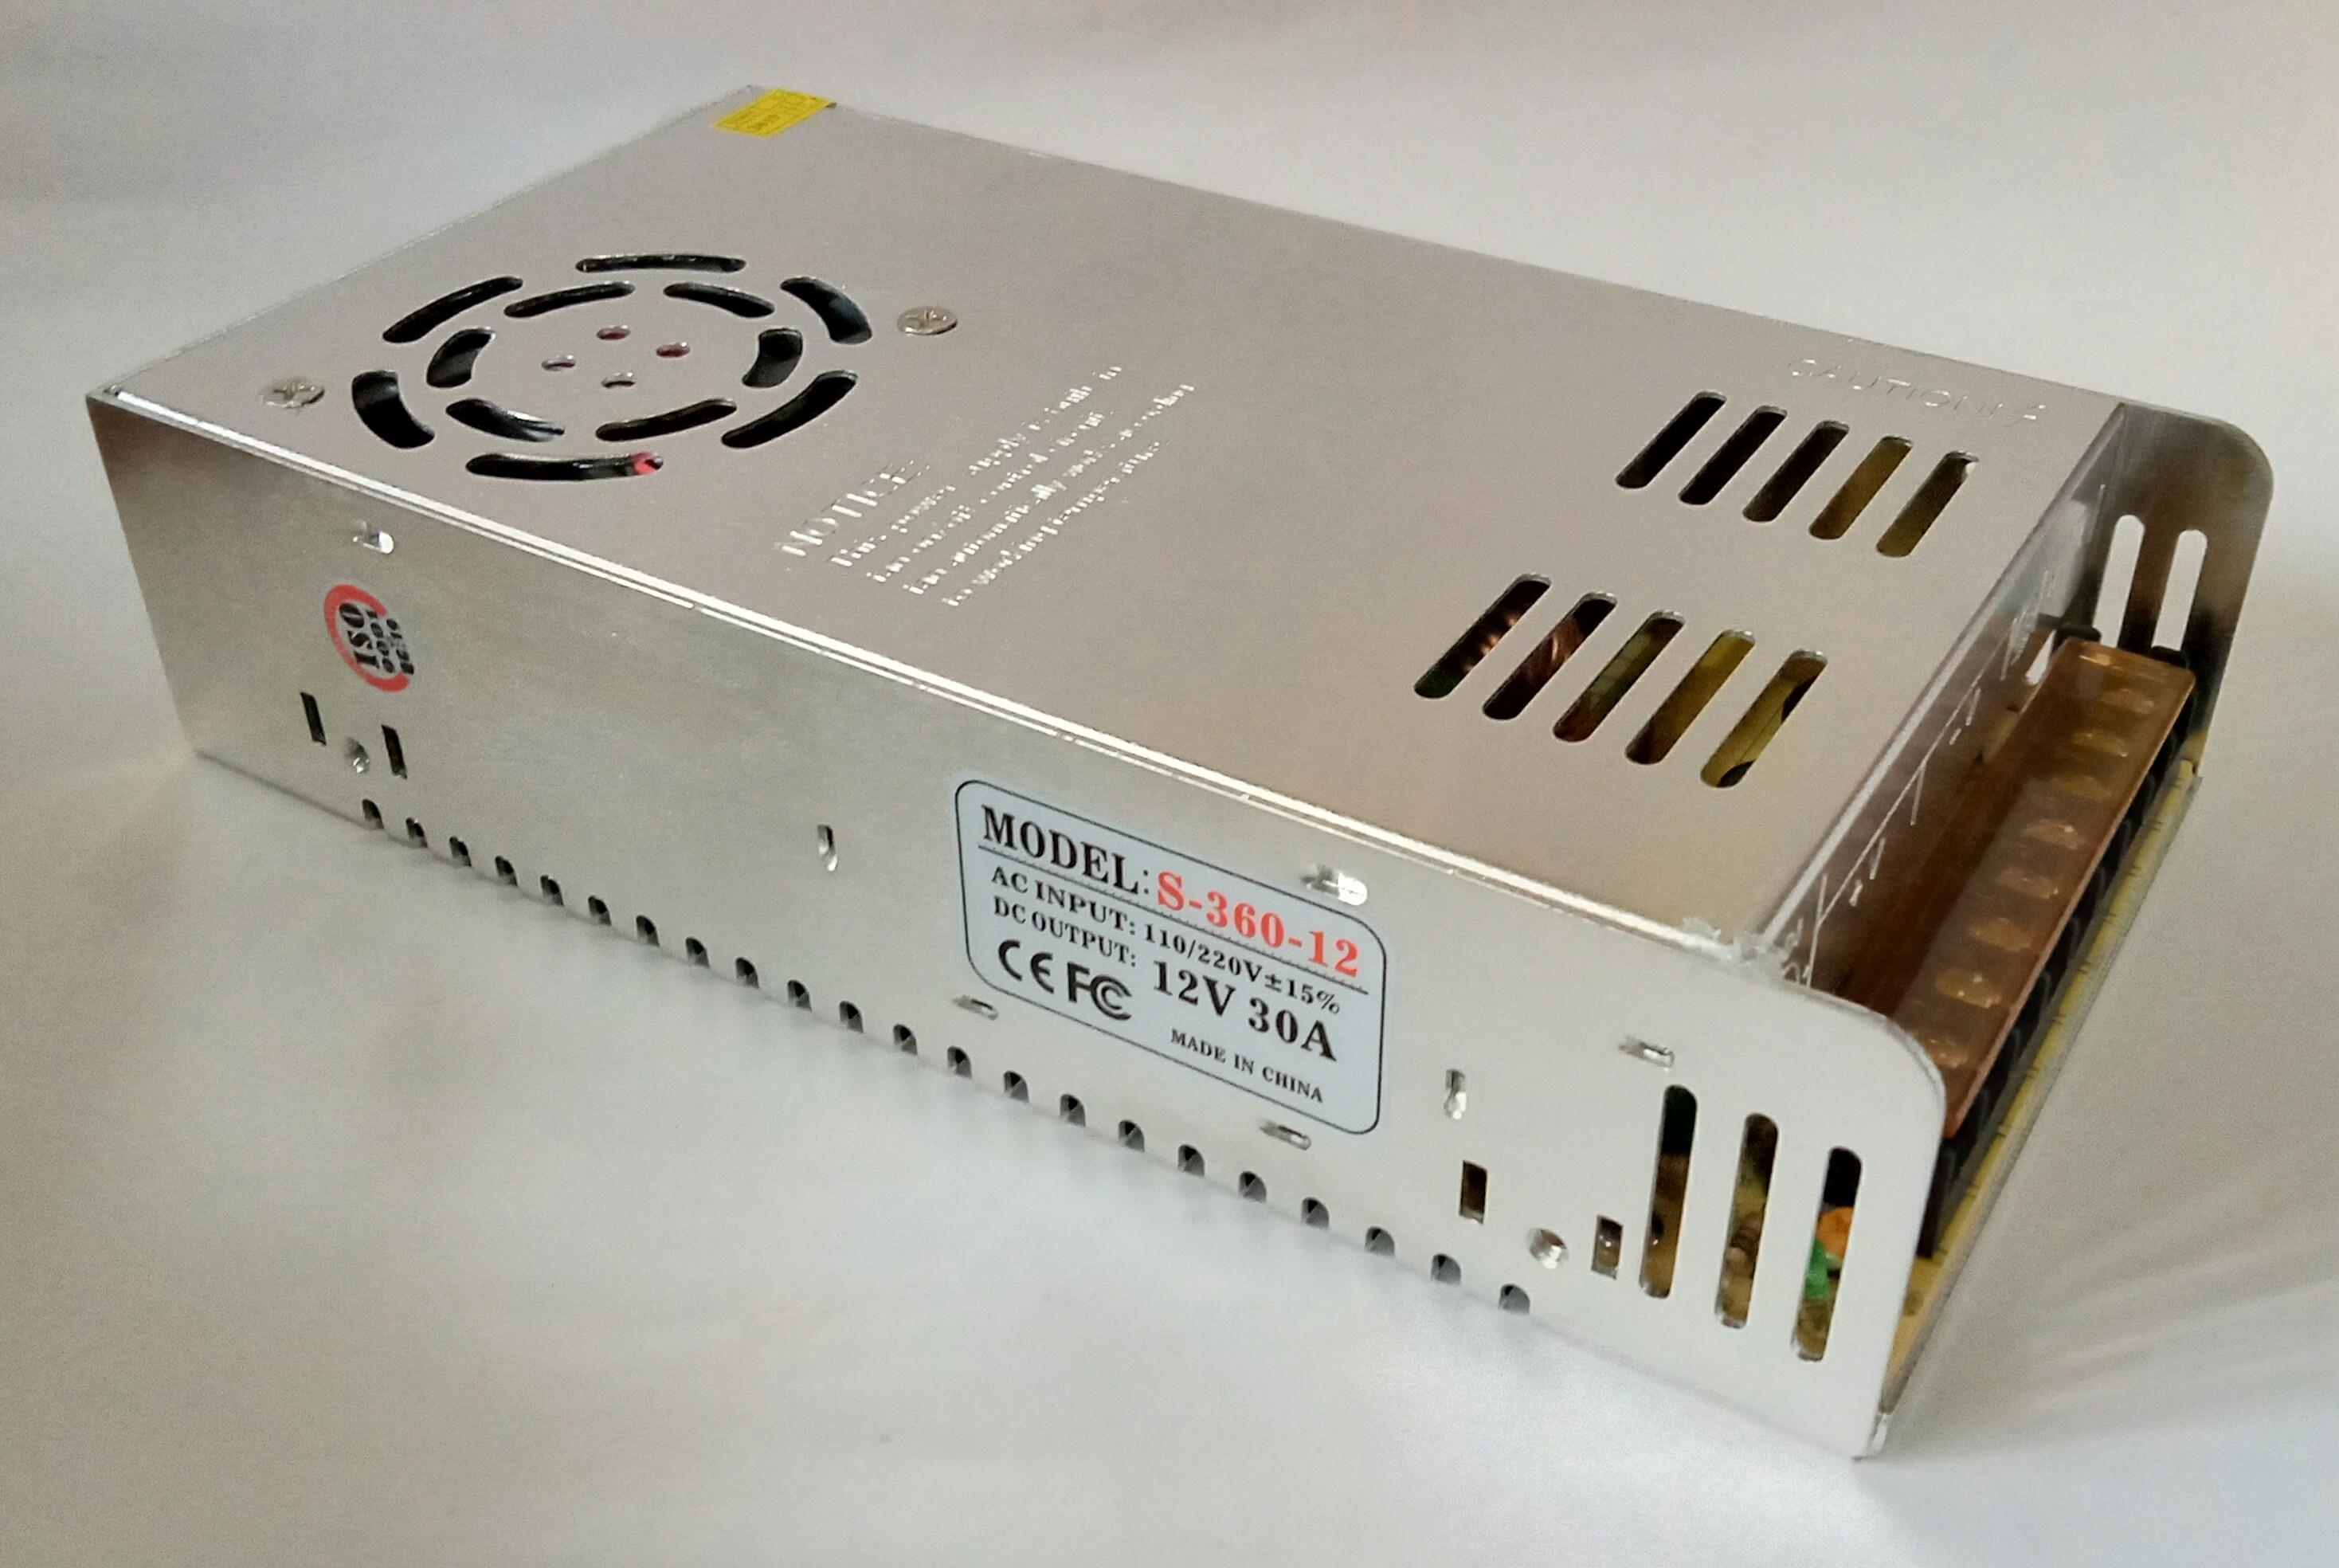 https://www.lazada.co.id/products/power-supply-ac-to-dc-12v-30a-360w-untuk-lampu-led-strip-cctv-s-360-12-i757744825-s1051880067.html